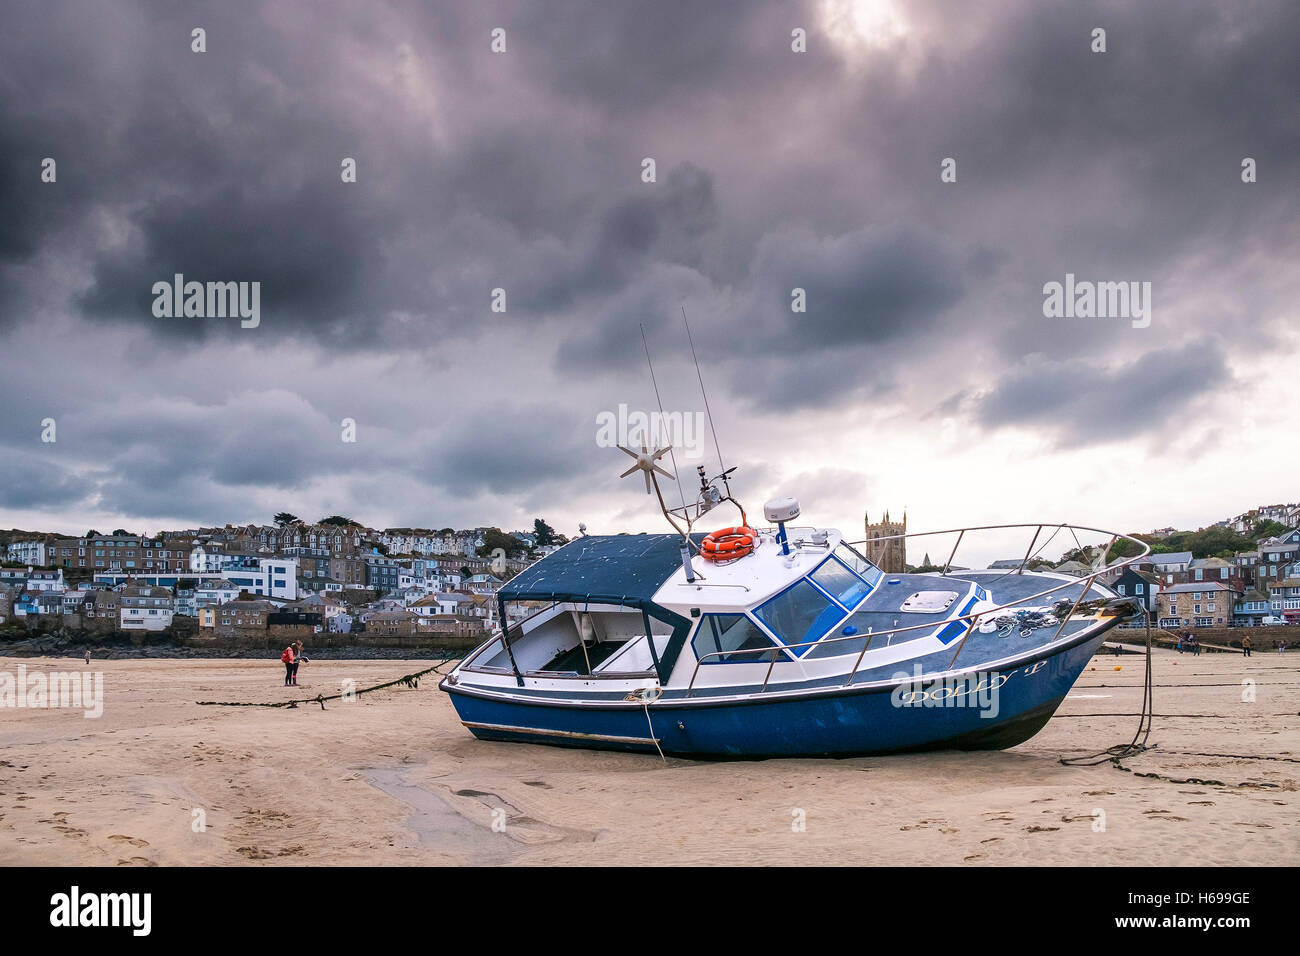 Low tide at St Ives harbour in Cornwall. Stock Photo